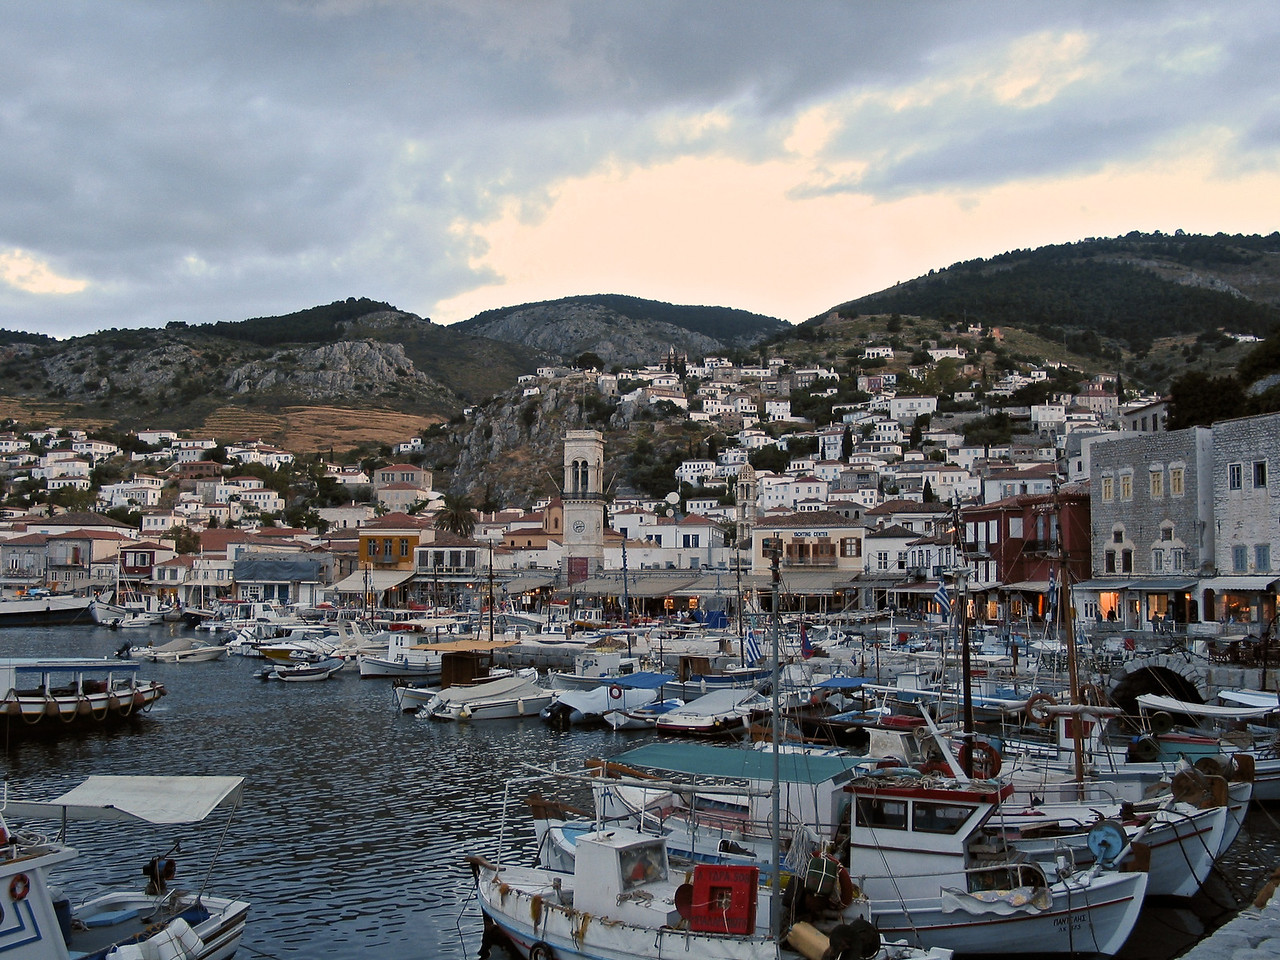 "There is one main town, known simply as ""Hydra port"" (pop. 2,526 in 2001). It consists of a crescent-shaped harbor, around which is centered a strand of restaurants, shops, markets, and galleries that cater to tourists and locals (Hydriots). Steep stone streets lead up and outwards from the harbor area. Most of the local residences, as well as the hostelries on the island are located on these streets."